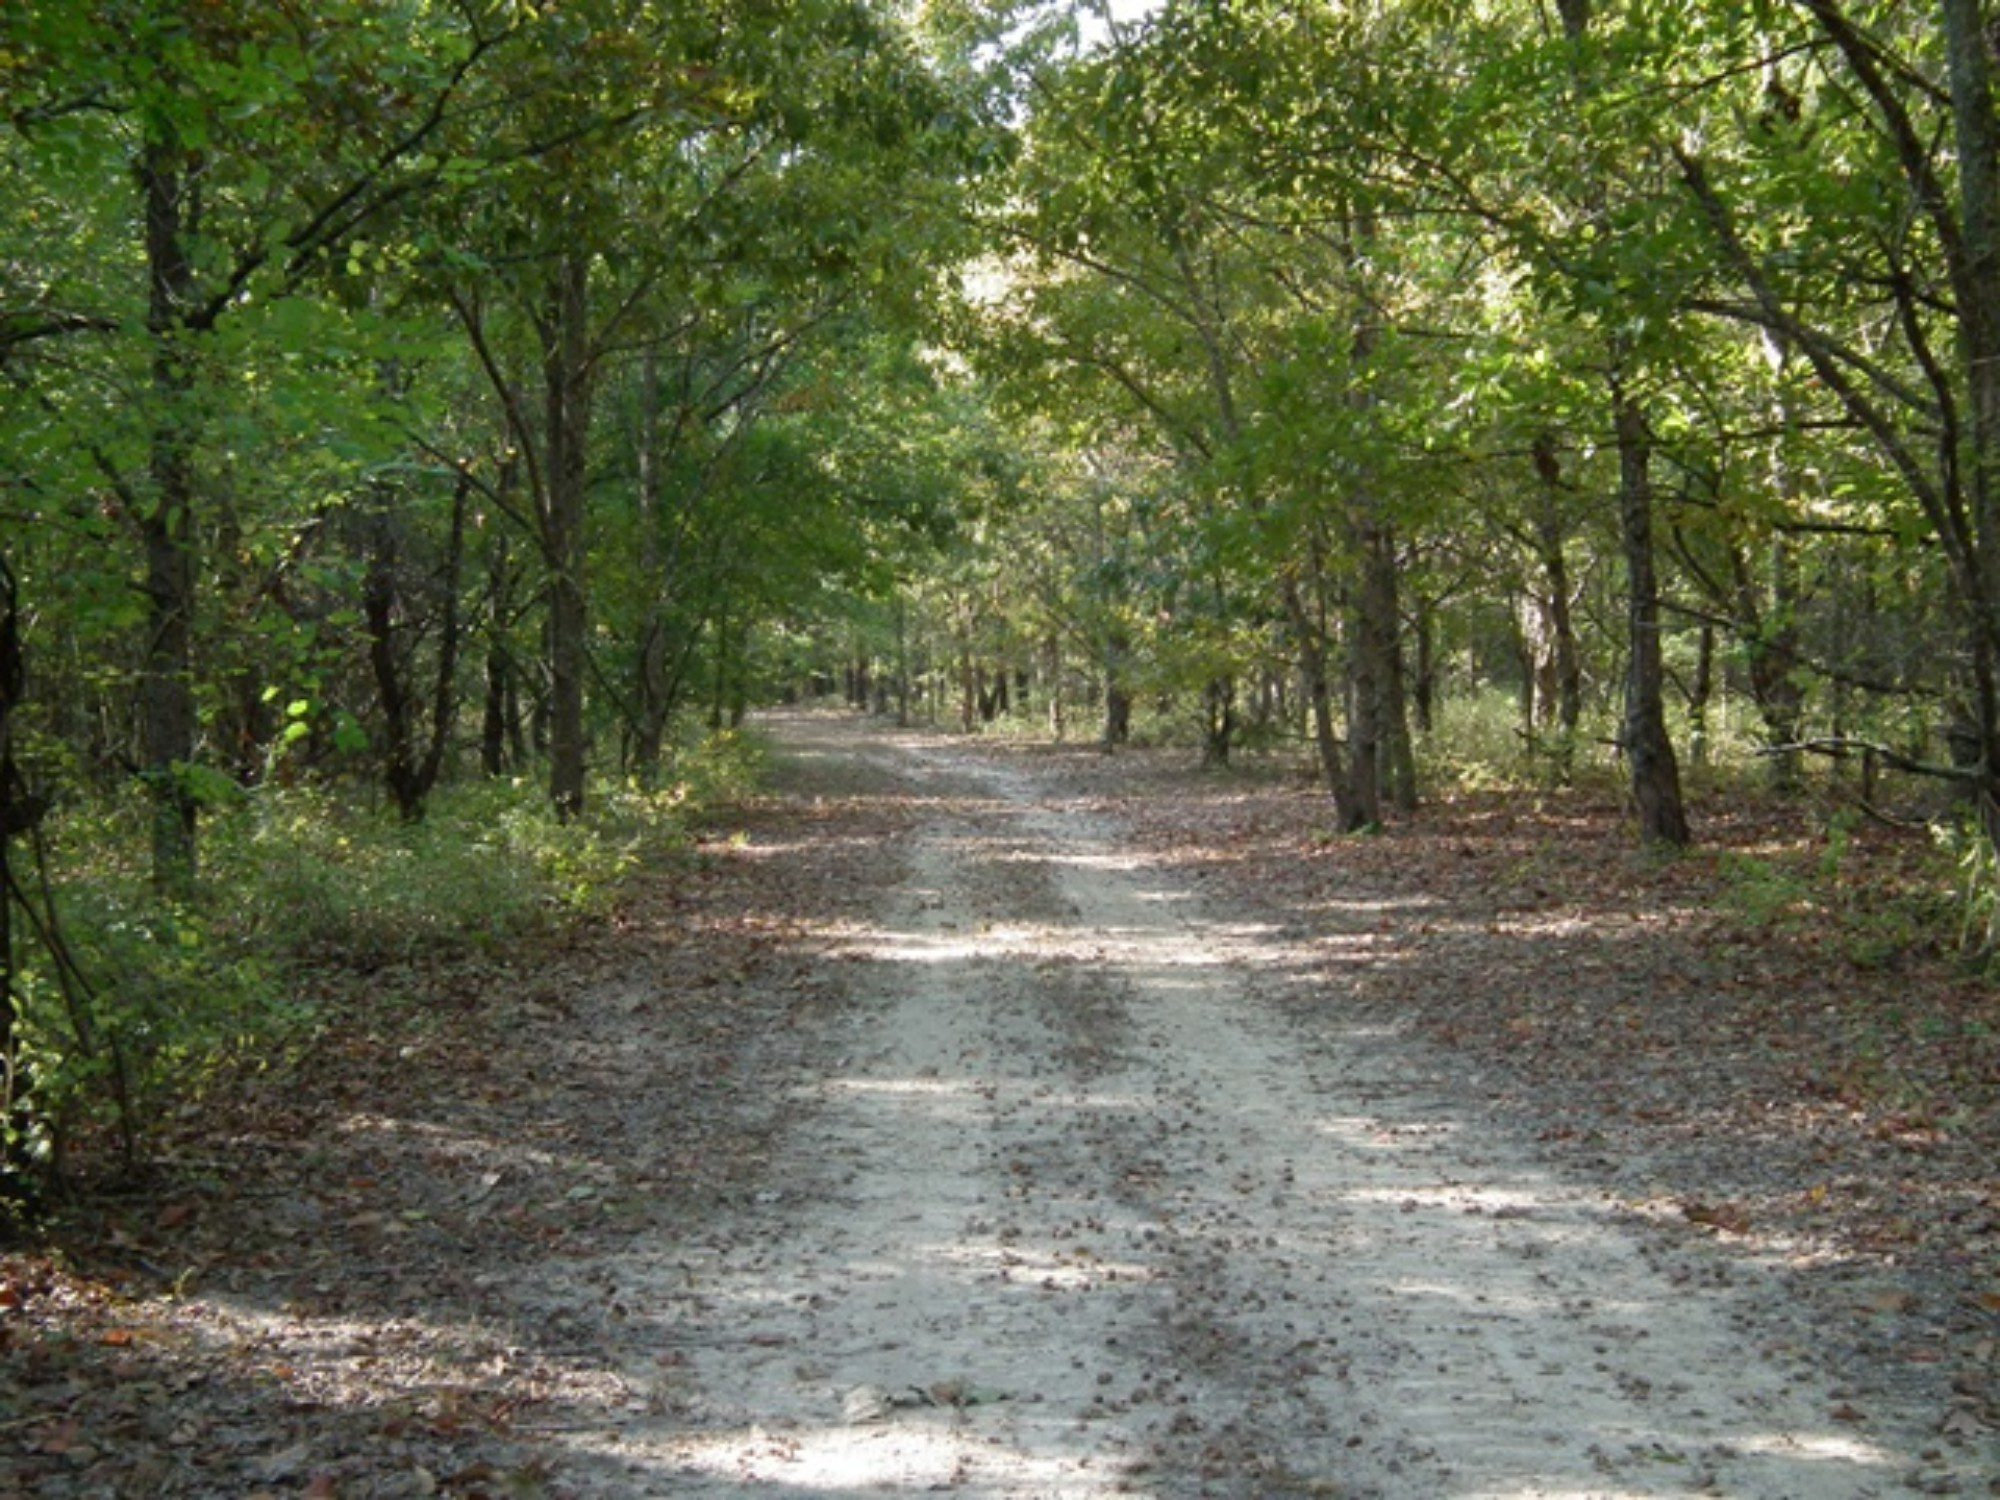 14 Well Maintained ATV Trails